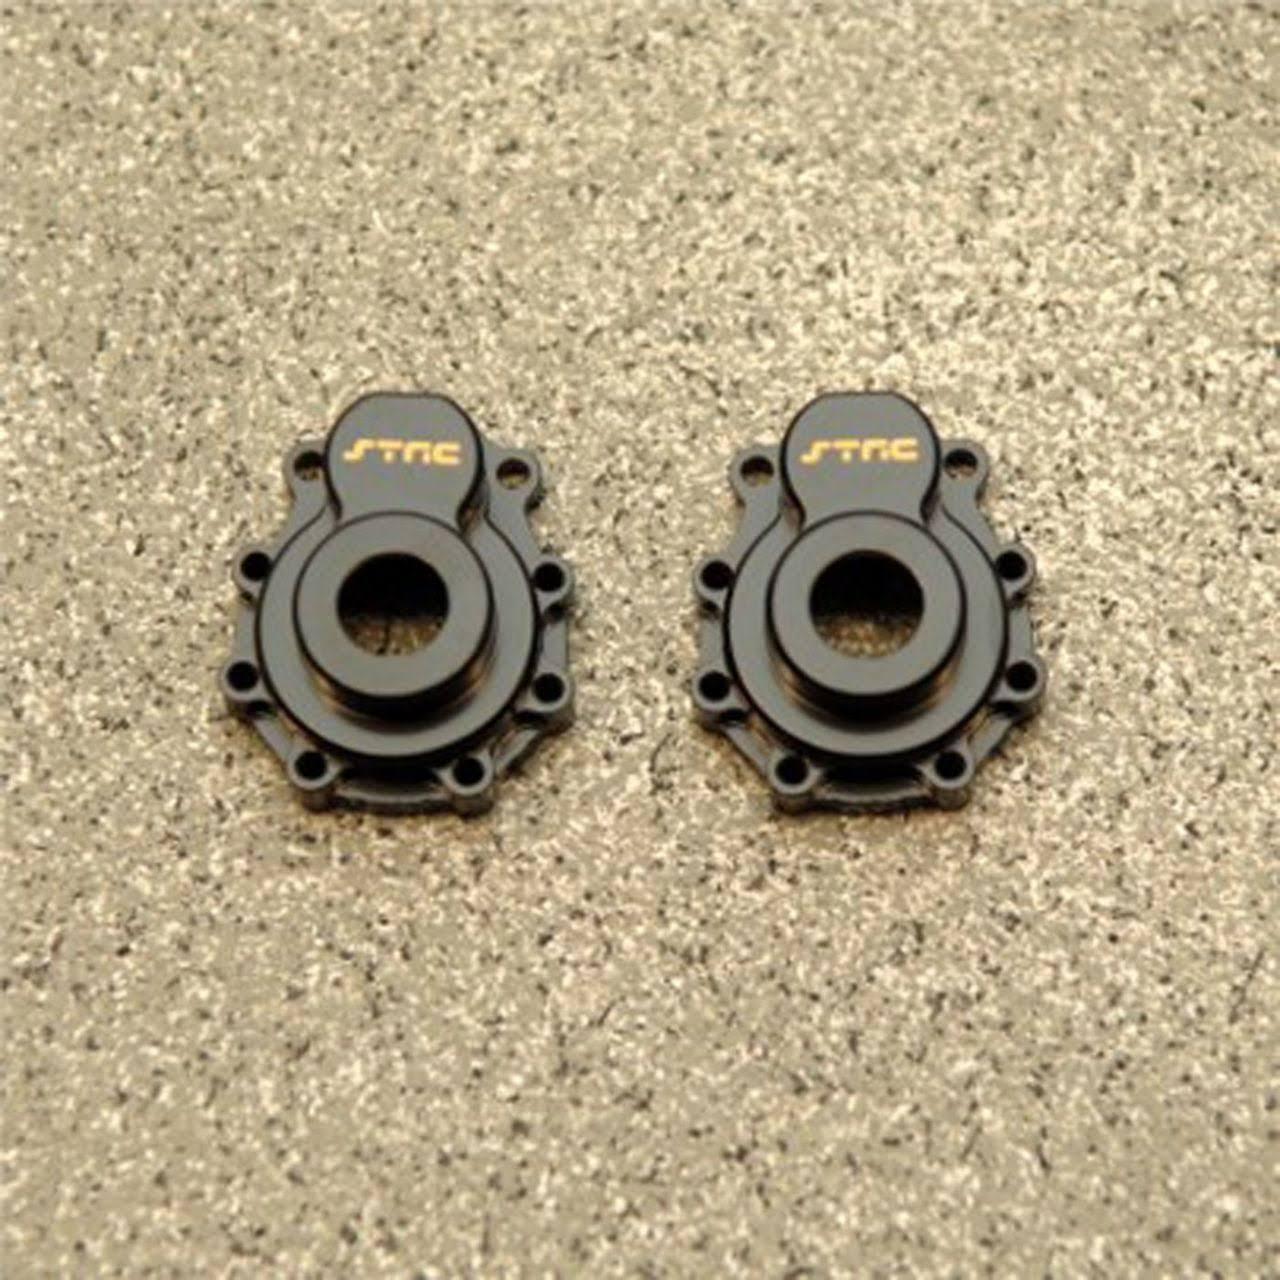 ST Racing Concepts Brass Outer Portal Drive Housi TRX-4 Black (1 Pair) CNC